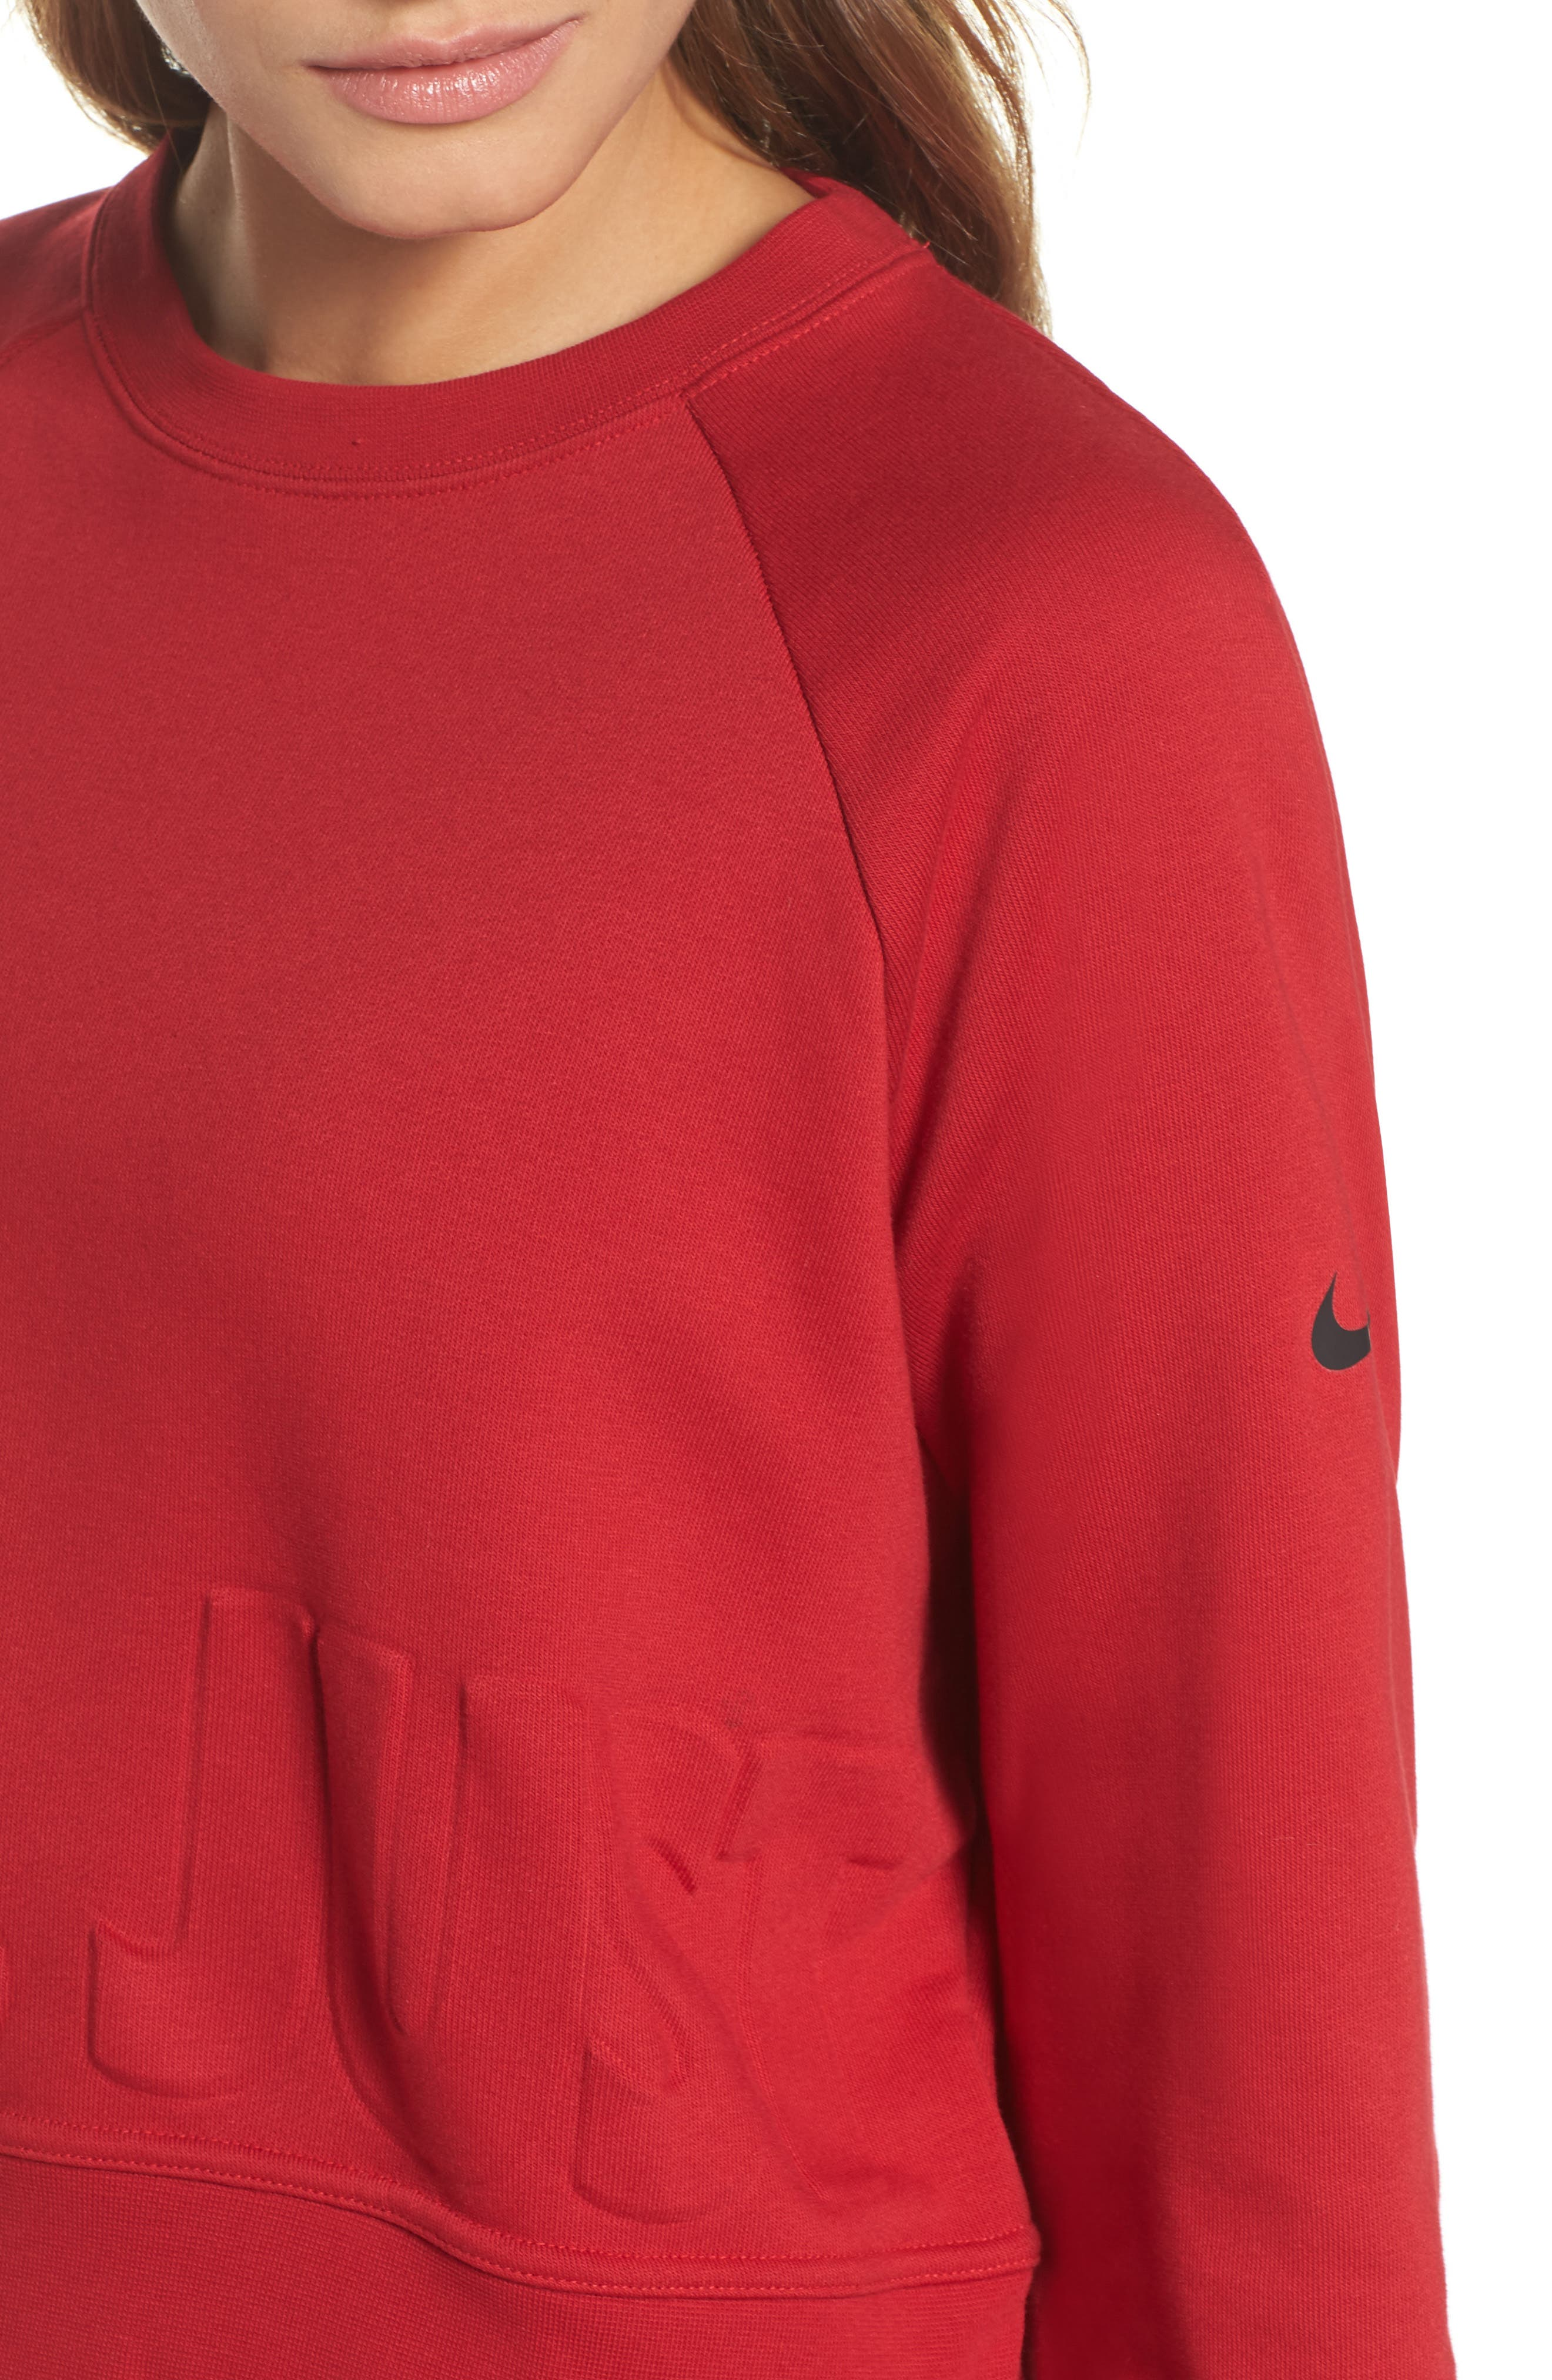 Long Sleeve Crop Training Top,                             Alternate thumbnail 4, color,                             Gym Red/ Black